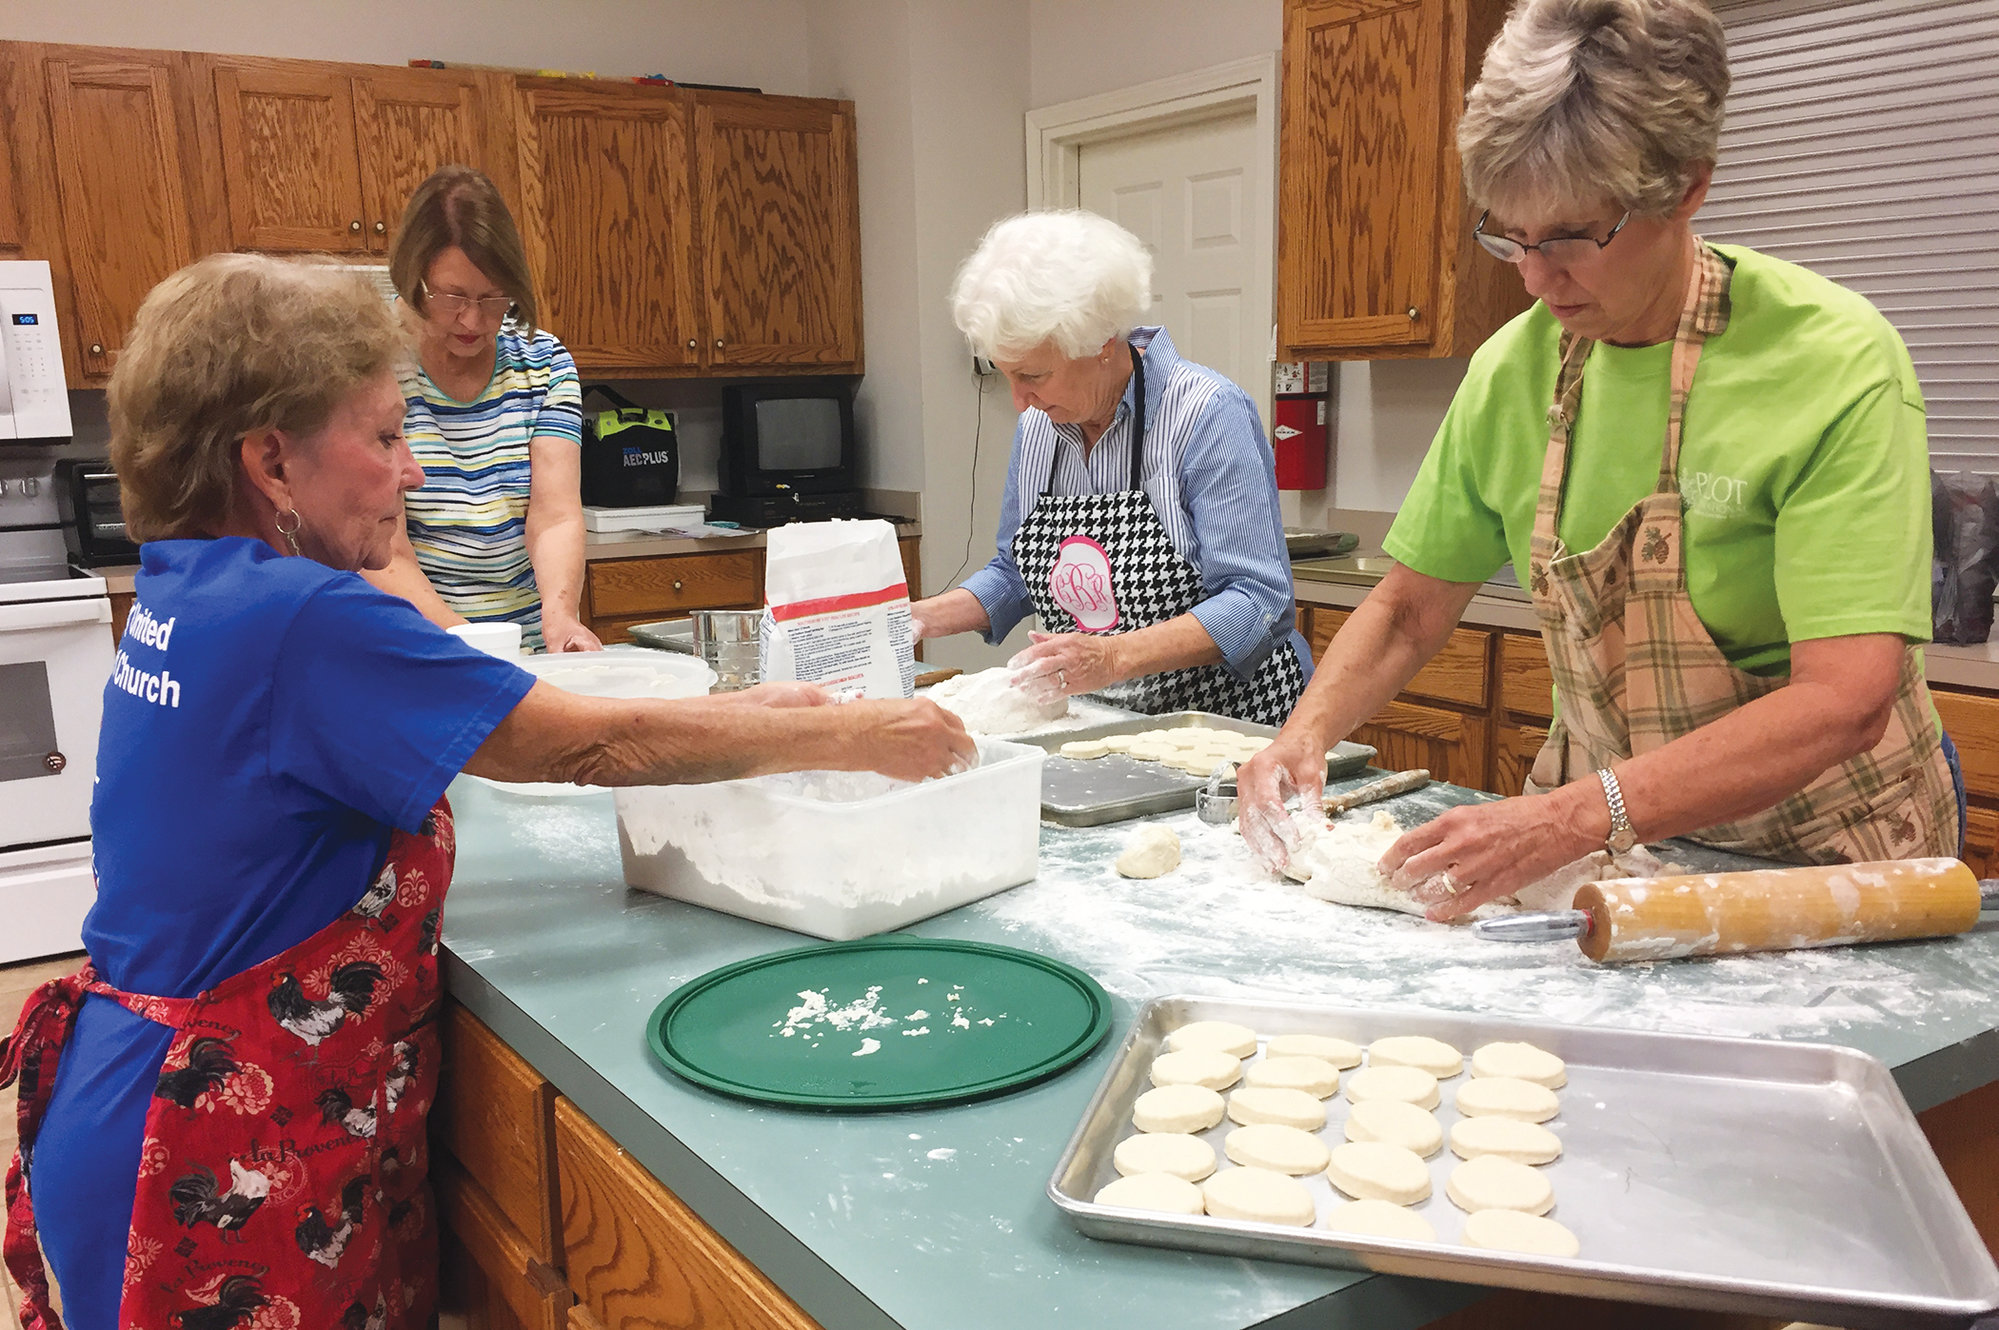 PHOTO PROVIDEDMembers of the Clarendon Pilot Club have been busily baking 184 dozen homemade biscuits for their club's annual bazaar that will be held from 4 to 6 p.m. Saturday, Nov. 20, at Manning Presbyterian Church, 233 N. Brooks St. From left, club members Camille Daniel, Gloria Watts, Carolyn Brewer and Peggy Benton are shown elbows deep in flour and butter making and baking the biscuits that are the highlight of each year's bazaar.